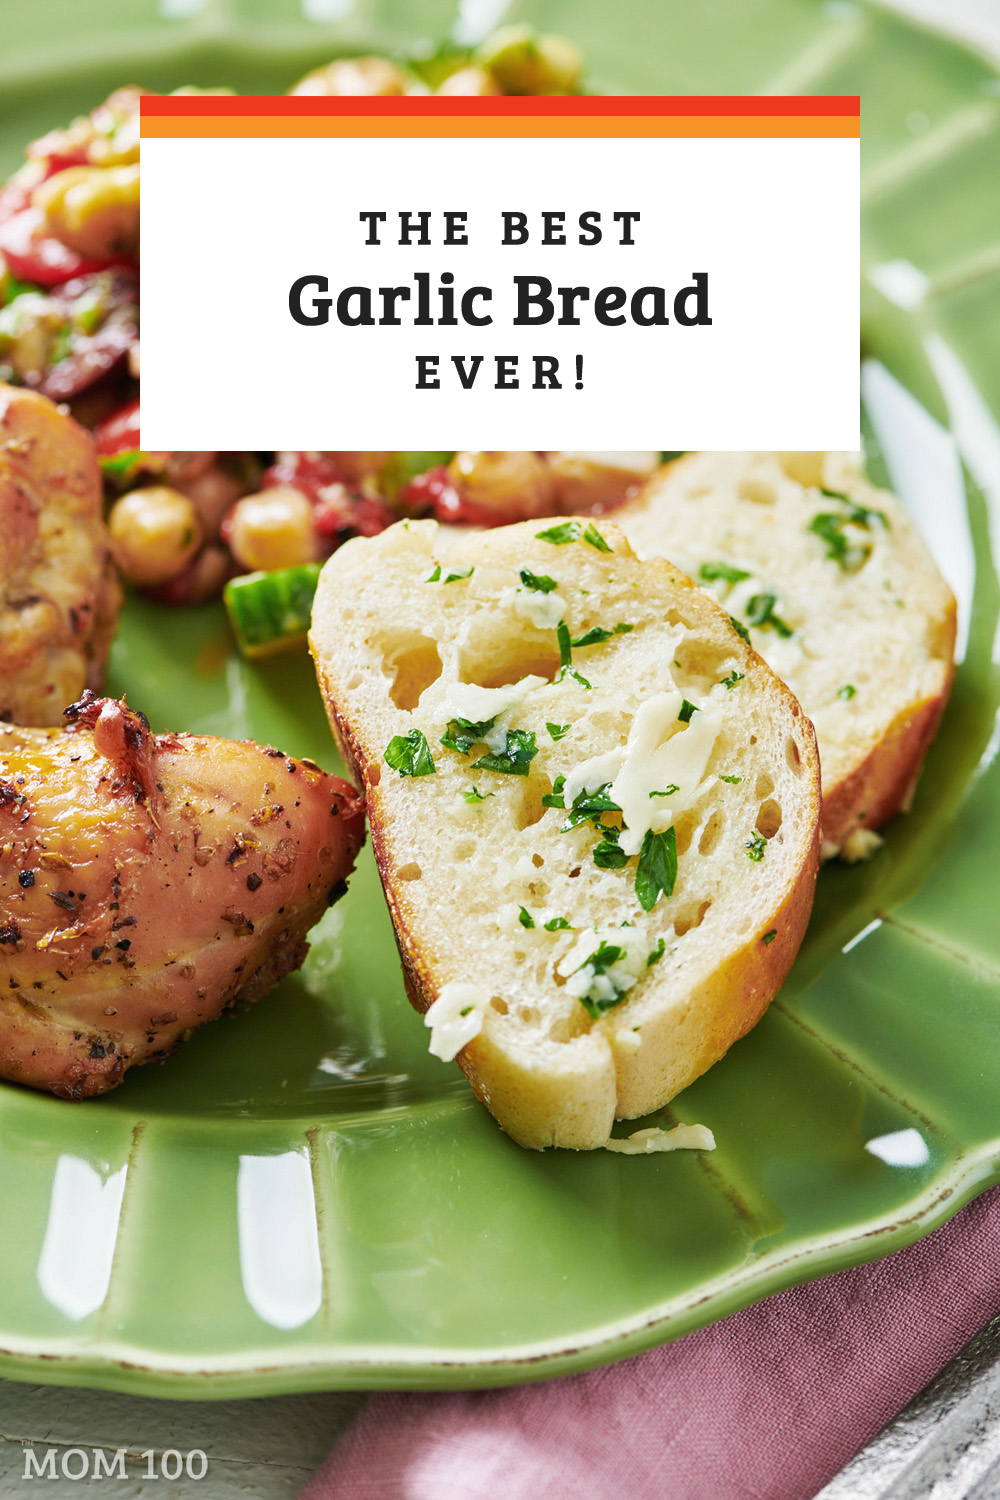 Best Garlic Bread Ever: Garlic bread is one of the most perfect foods of all time, and one of the easiest to make.